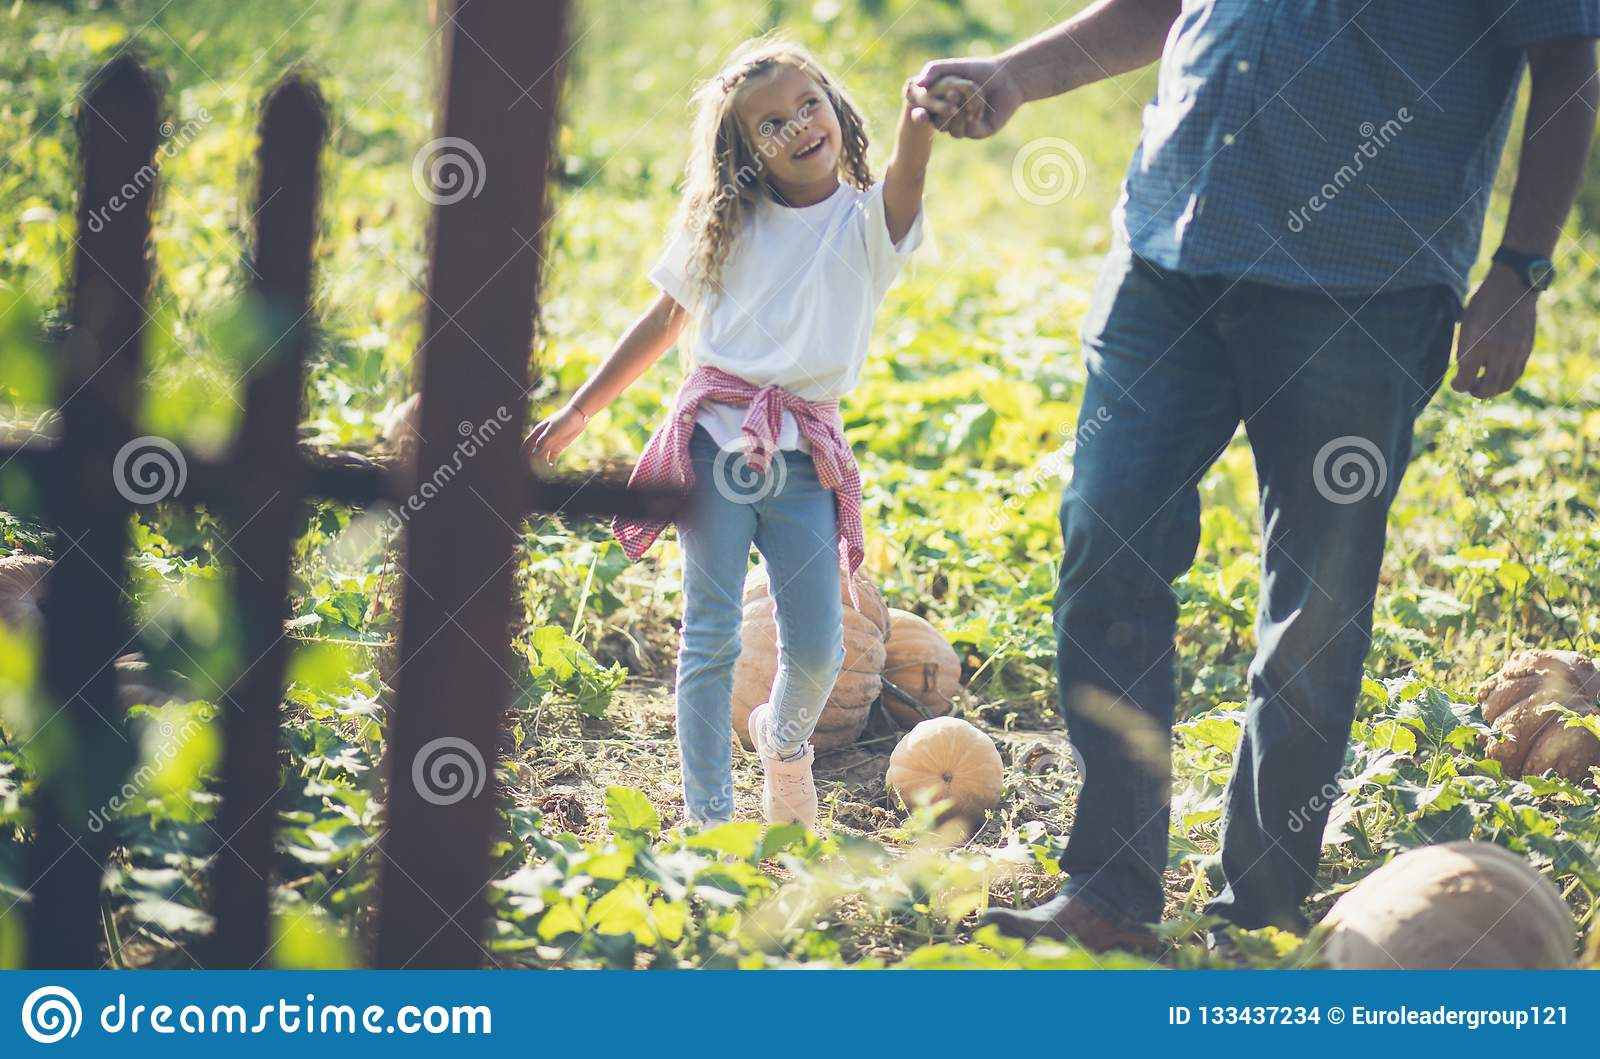 Grandpa, I enjoy with you when we are in the countryside